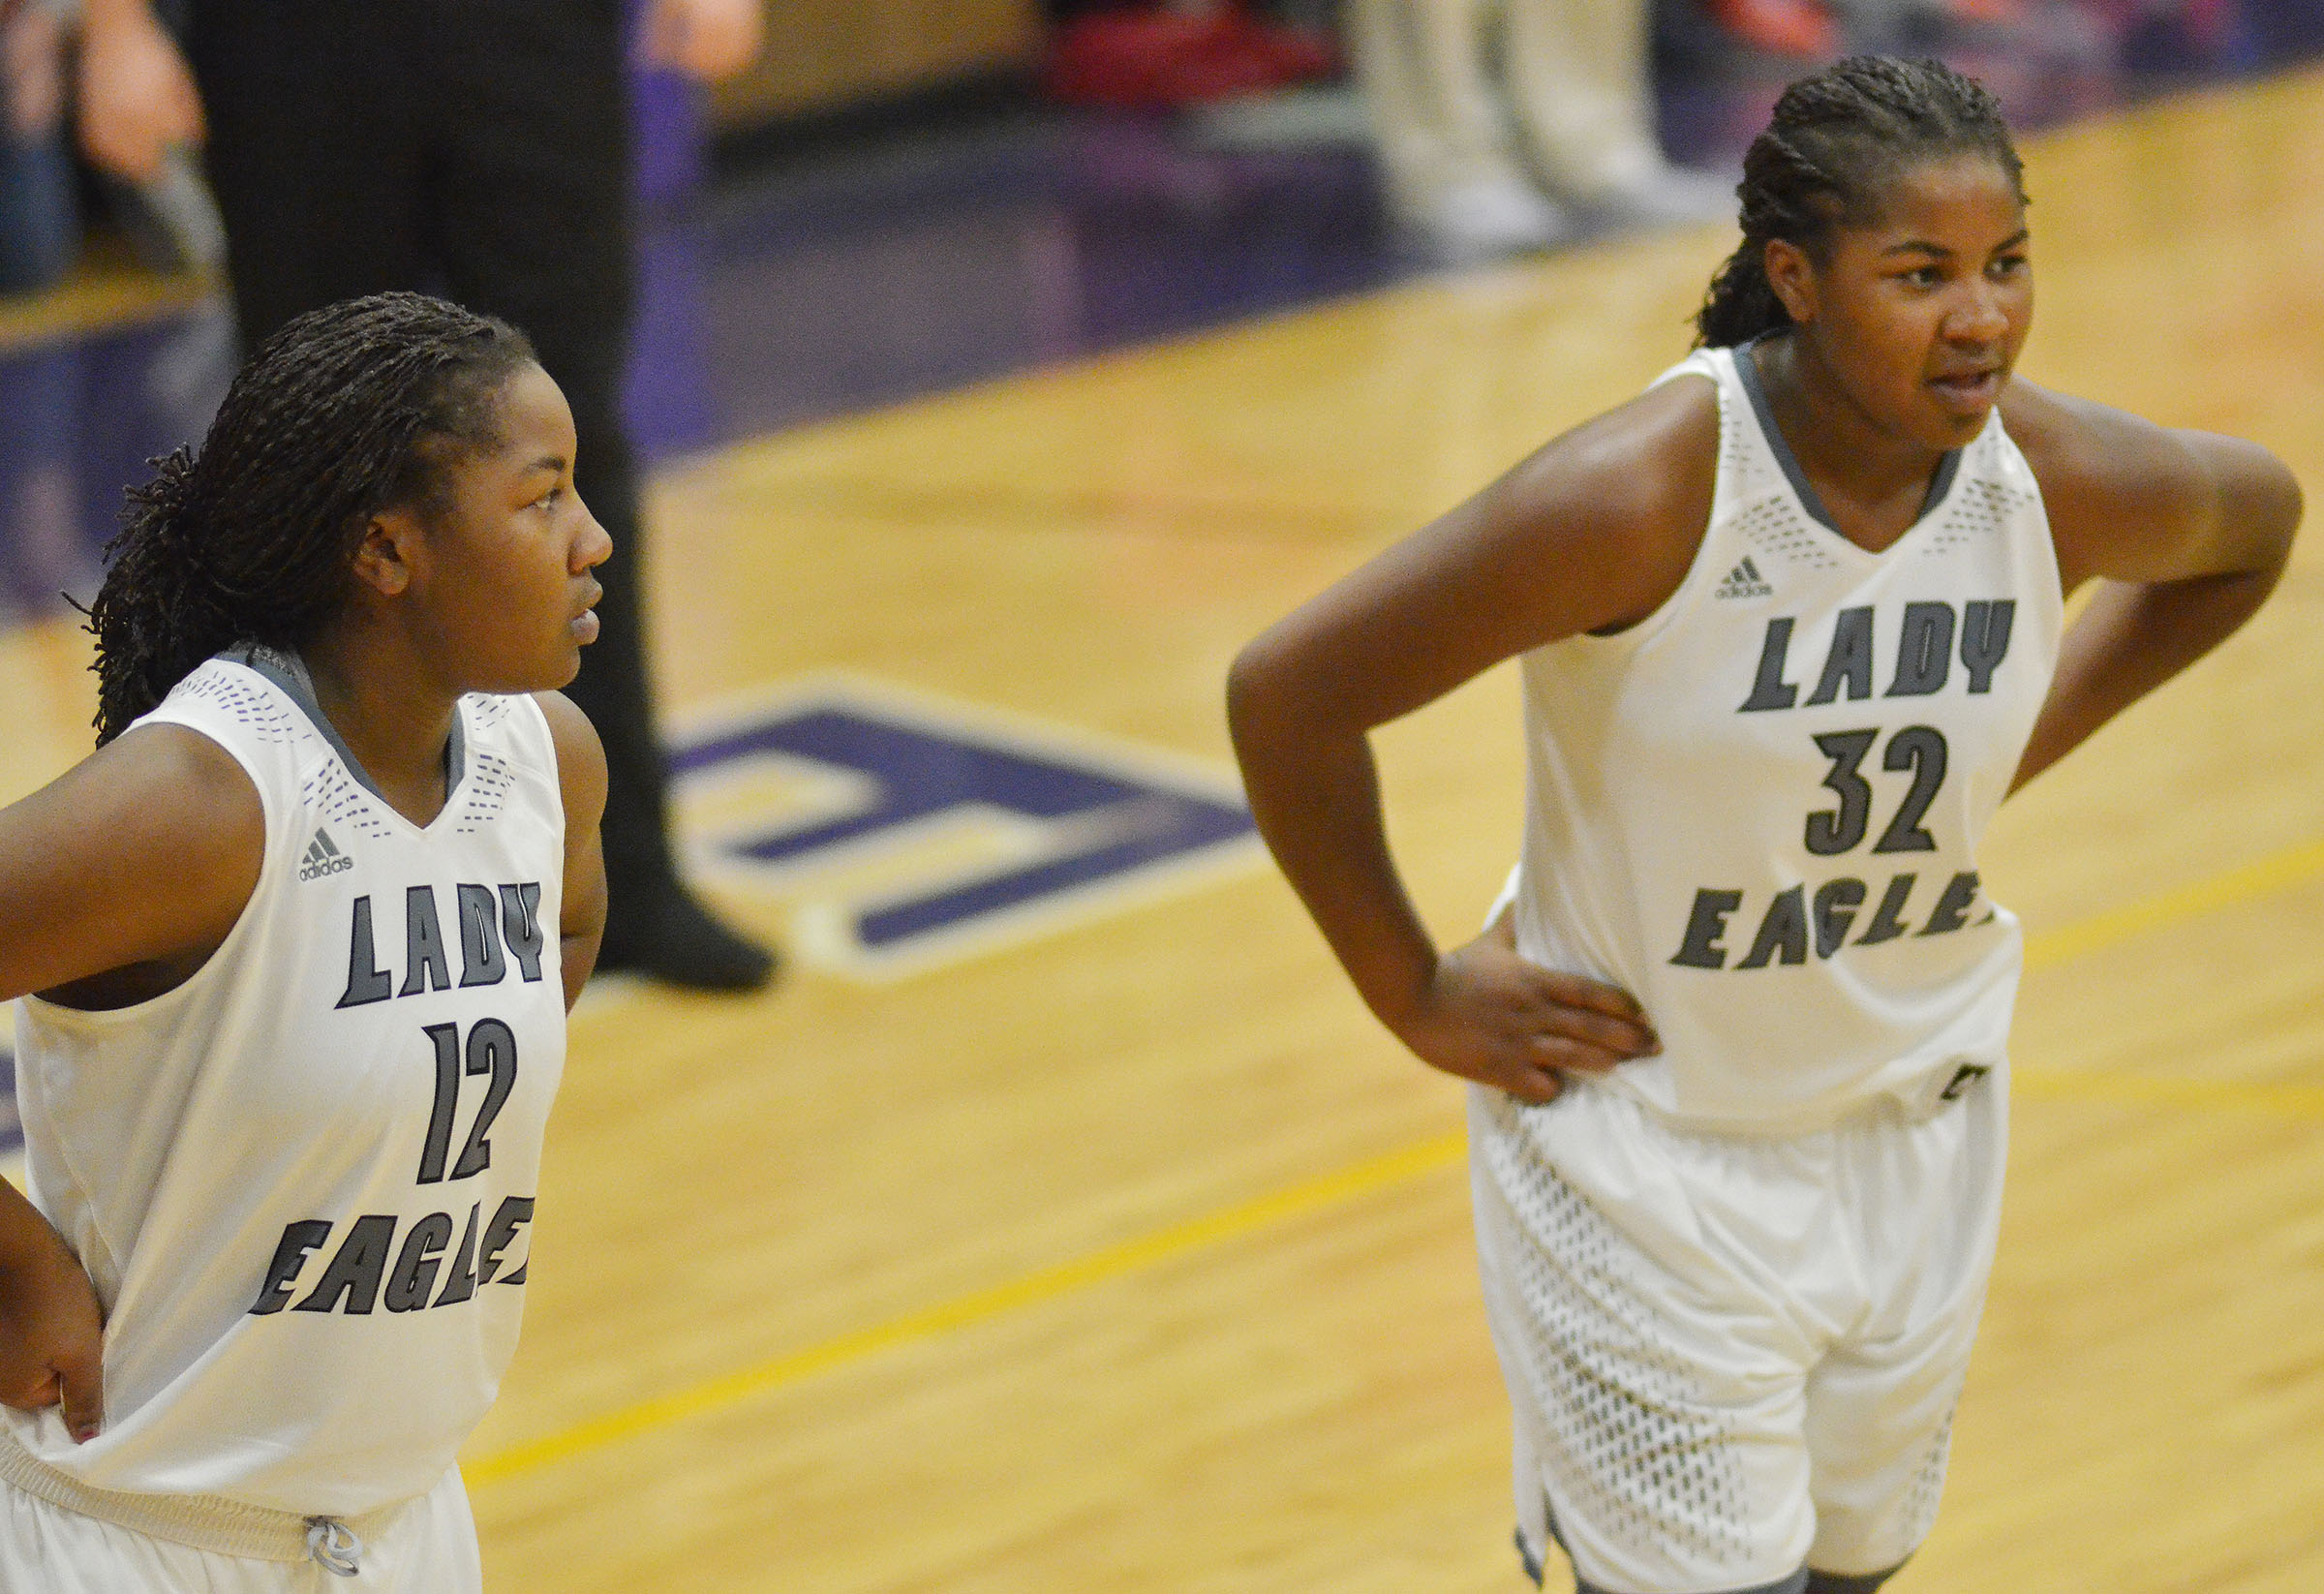 CHS juniors – and twin sisters – Kiyah Barnett, at left, and Nena Barnett get set for a play.